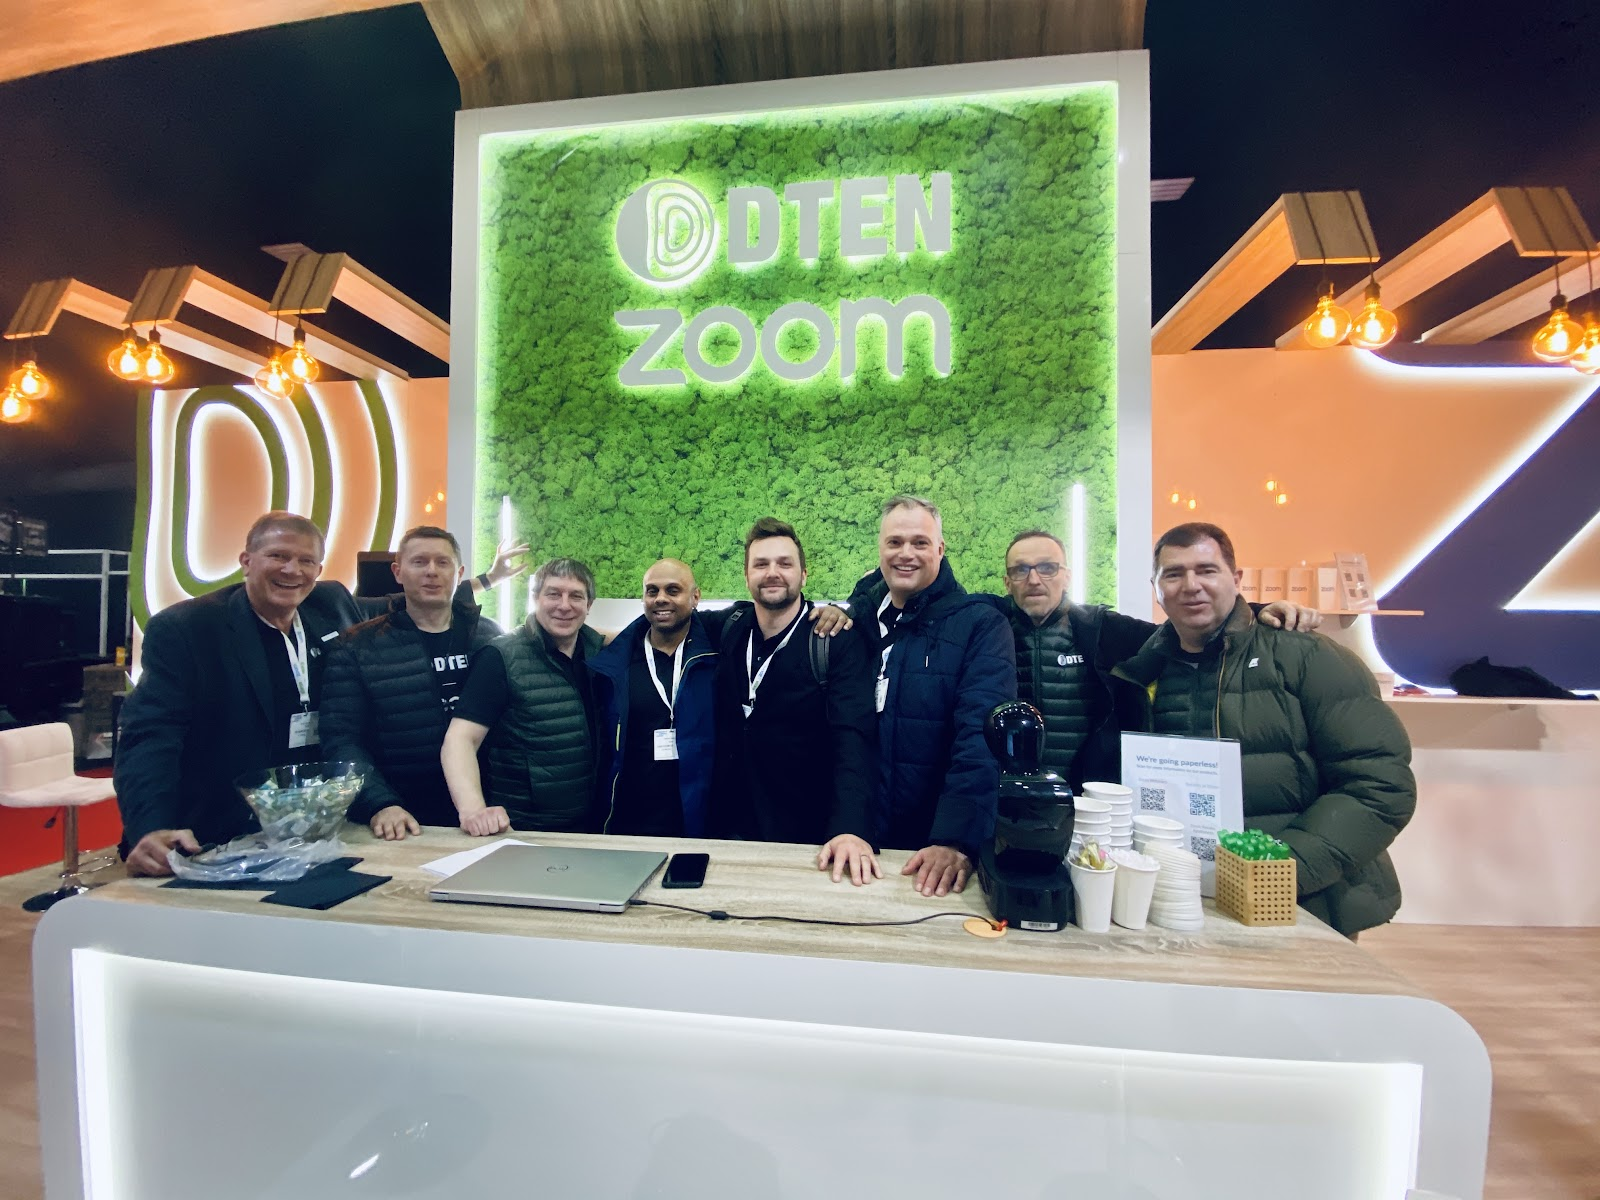 DTEN and Zoom co-develop solutions that improve the ways users connect with one another, wherever they are